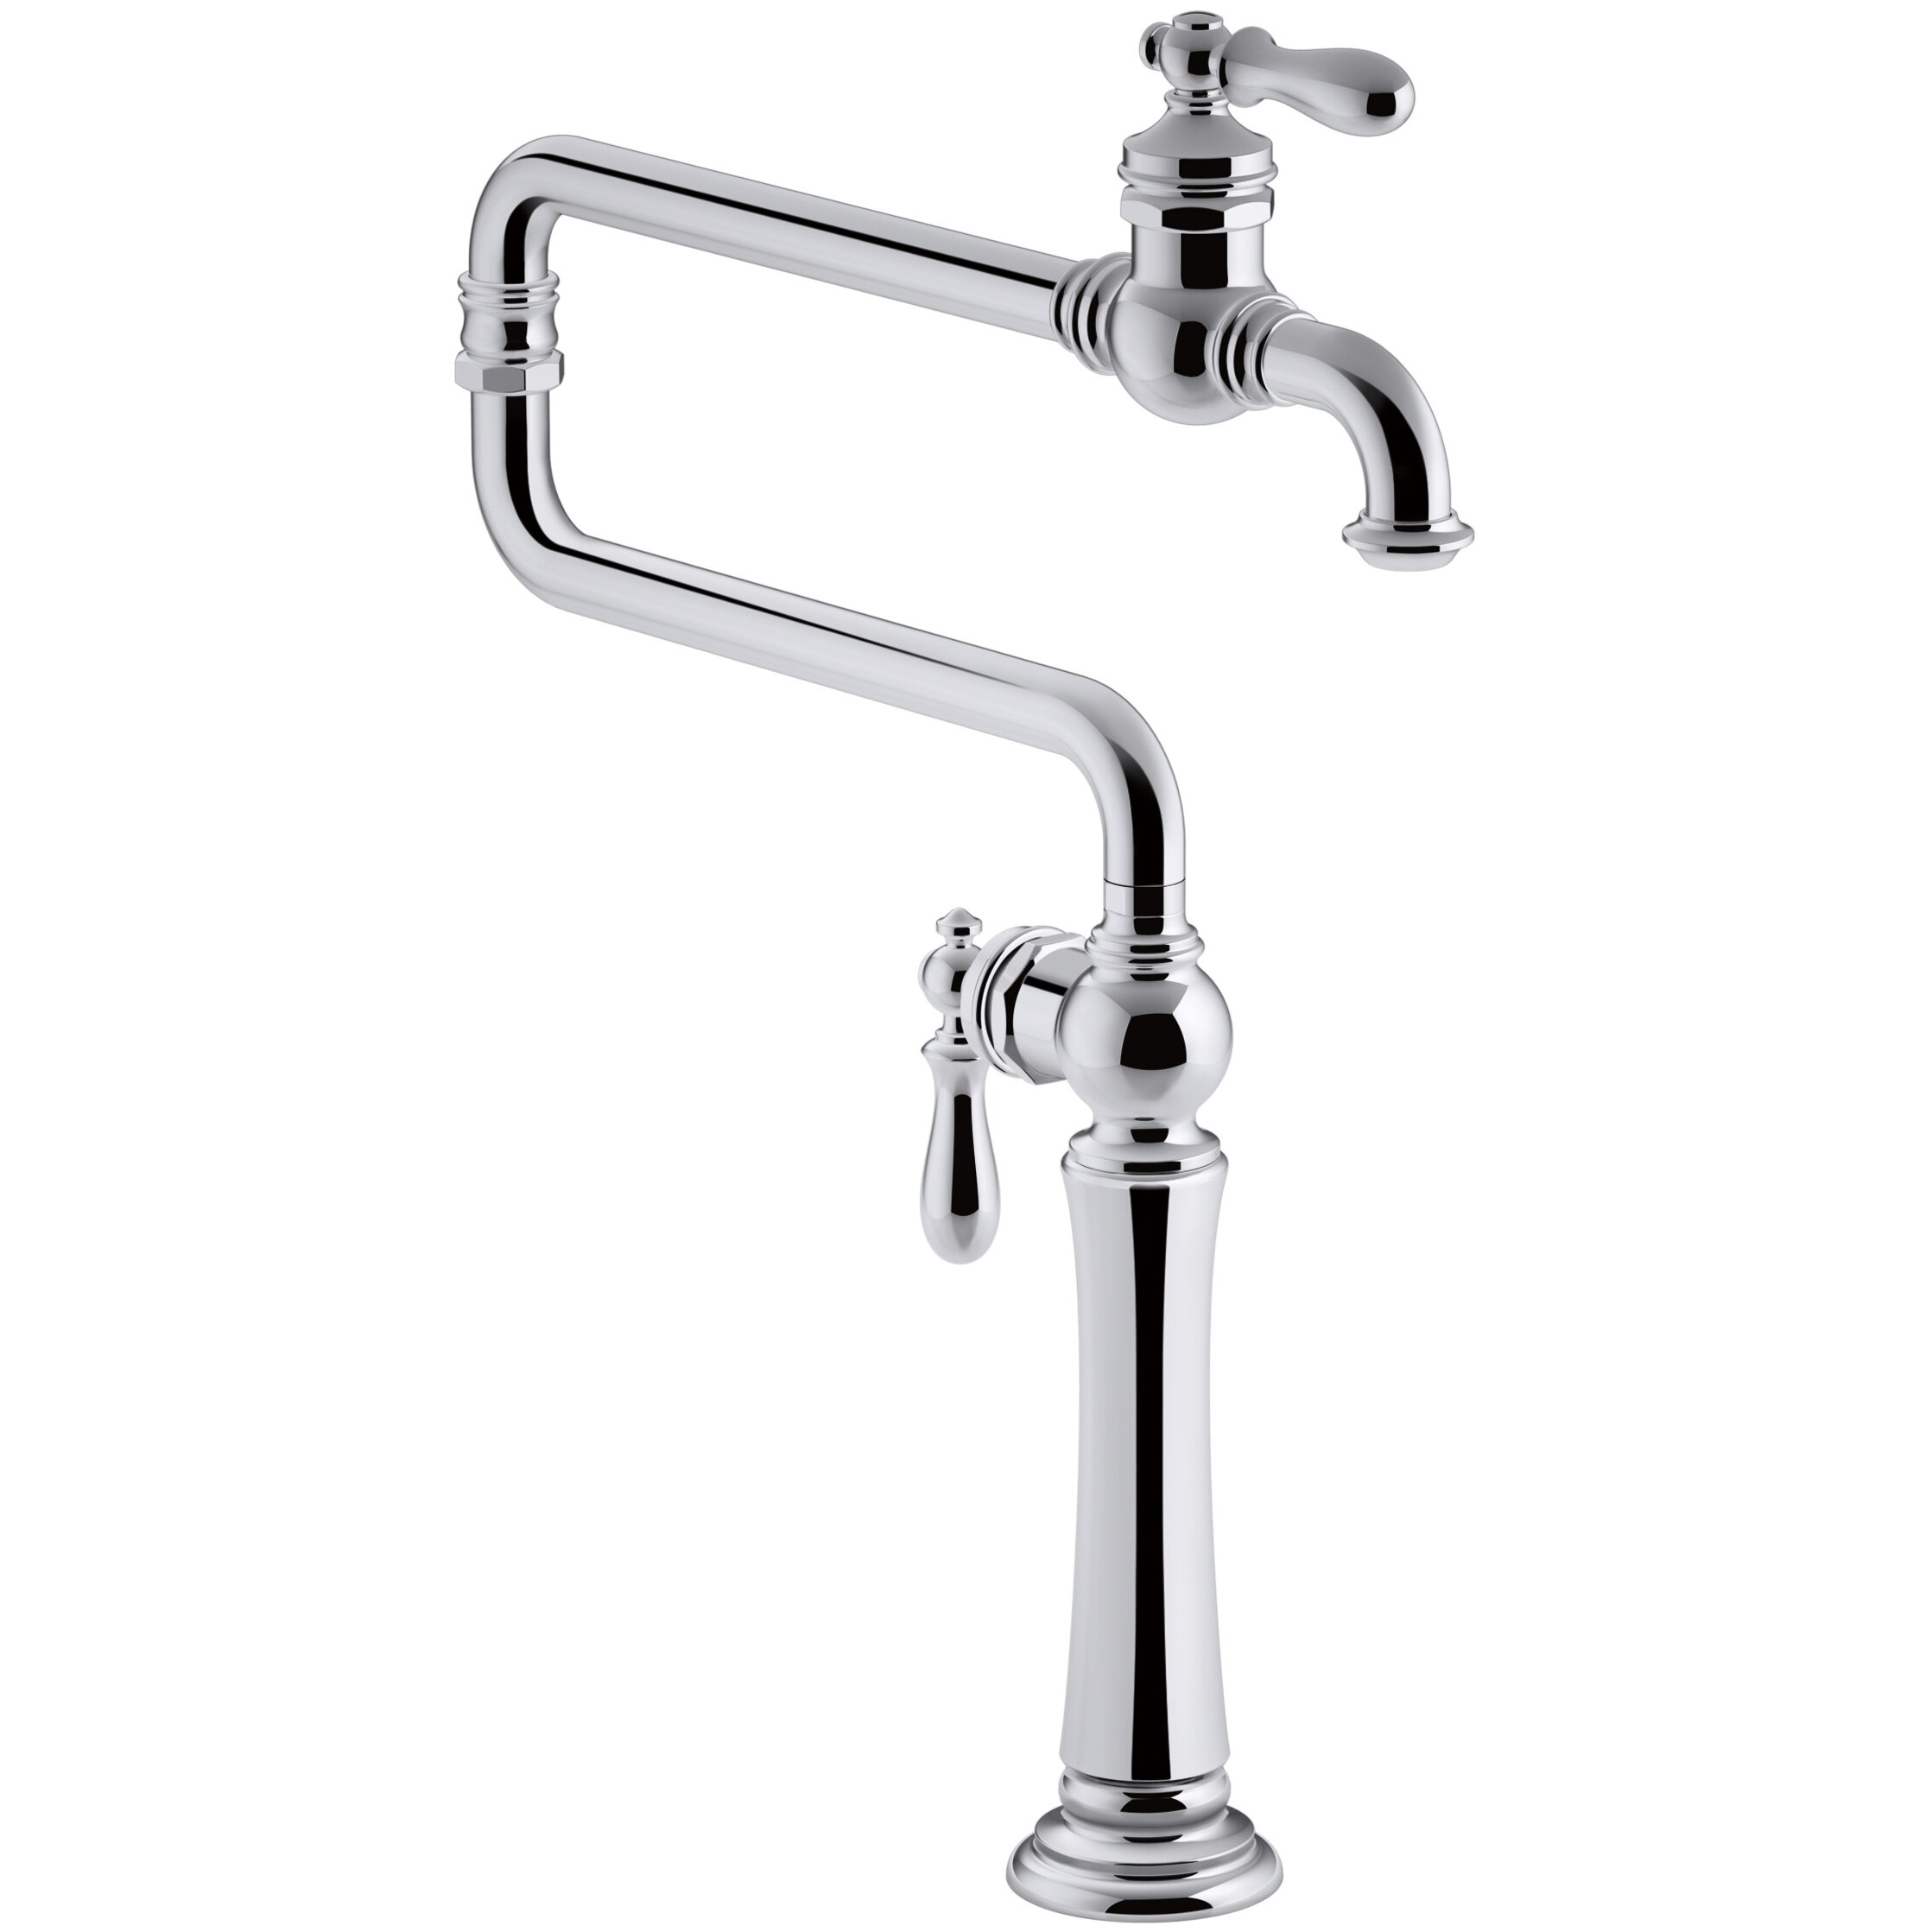 Hansgrohe Bathroom Faucet Befon for